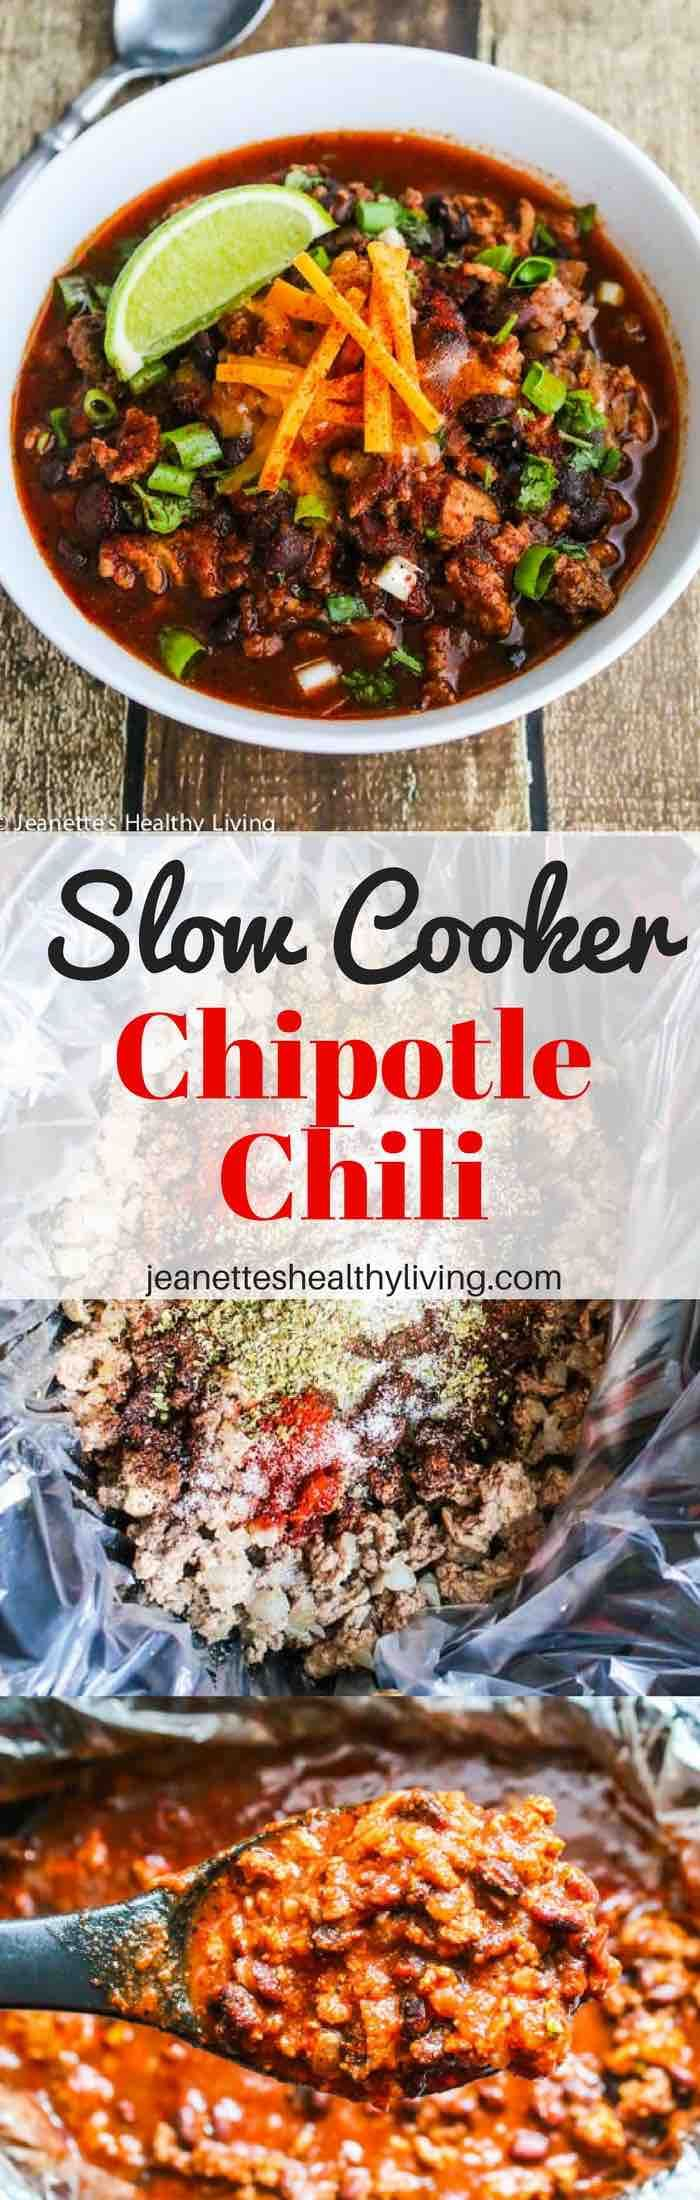 Slow Cooker Chipotle Chili - smoky and delicious, this chili recipe is perfect for busy weeknights, lazy weekends and Game Day entertaining.